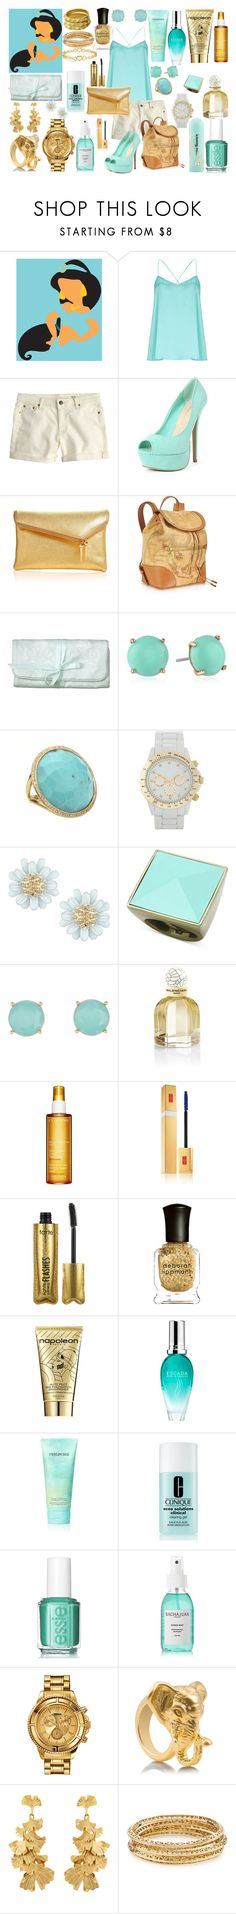 """""""Jasmine: Disney High"""" by thequeenofreading ❤ liked on Polyvore featuring Alice & You, J.Crew, Wild Diva, Henri Bendel, Alviero Martini 1° Classe, Laura Ashley, FOSSIL, Ippolita, Dorothy Perkins and Glitterrings"""